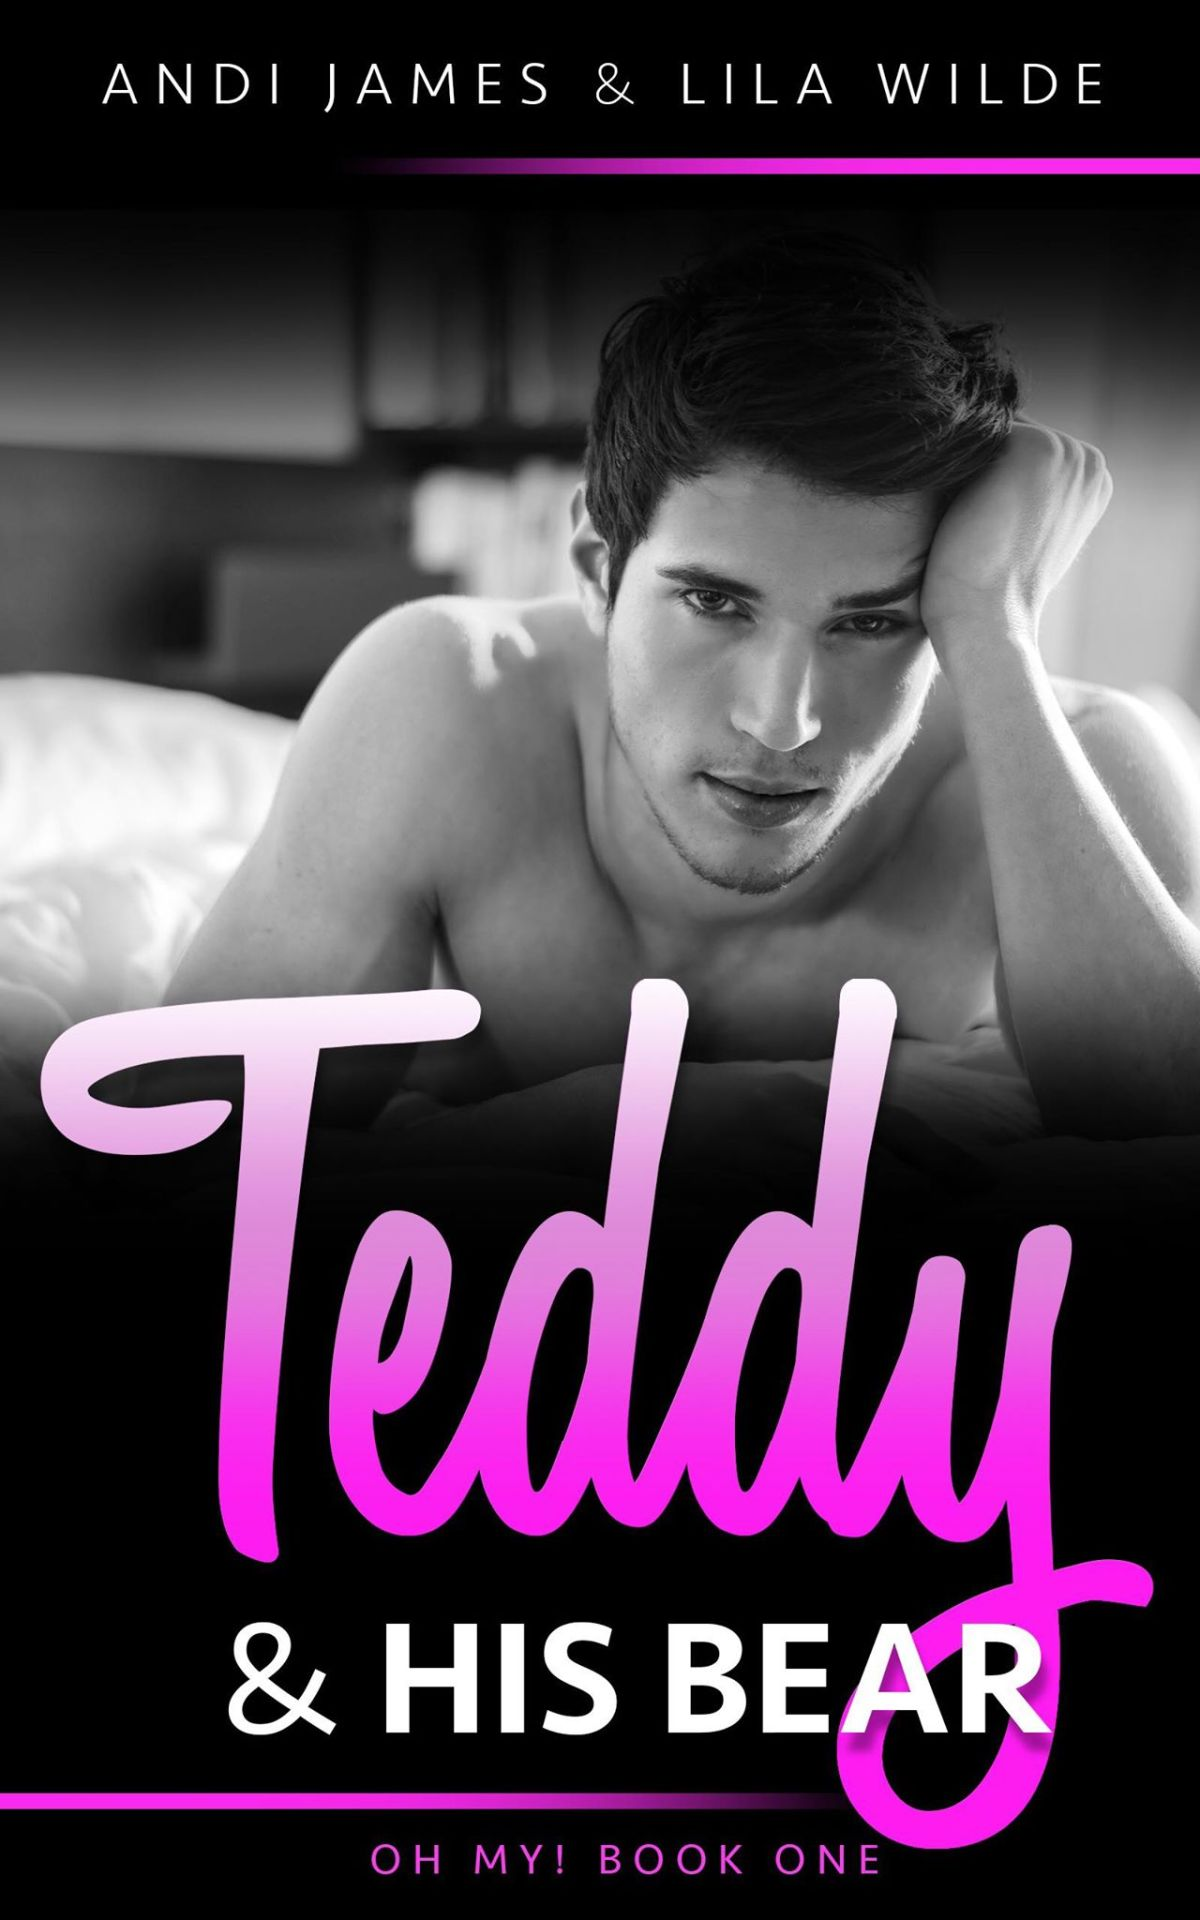 Teddy is coming!